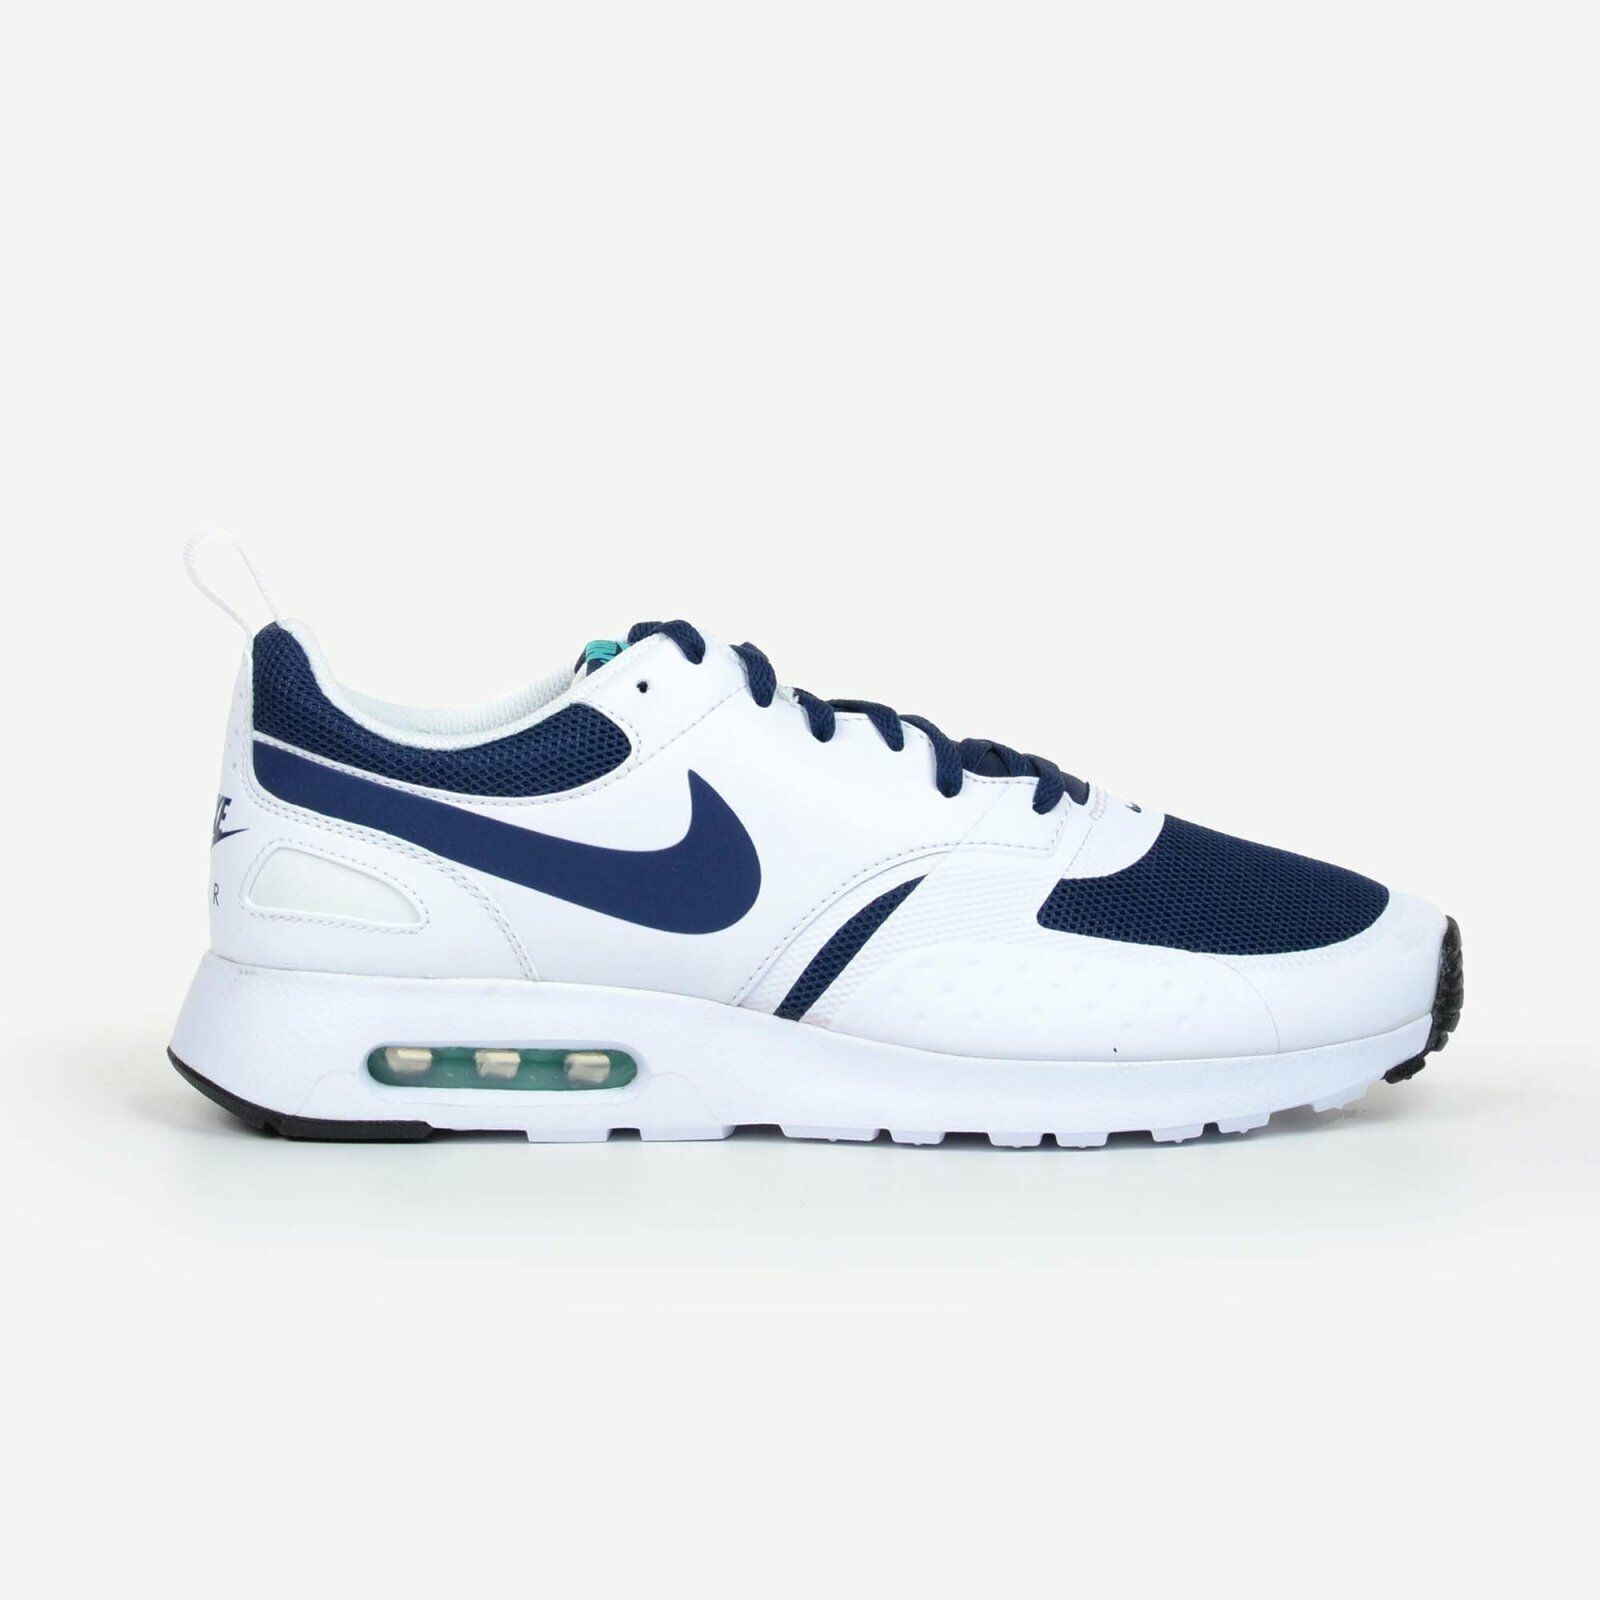 Nike Air Max Vision White Midnight Navy 2017 Uomo Running Shoes 918230-400